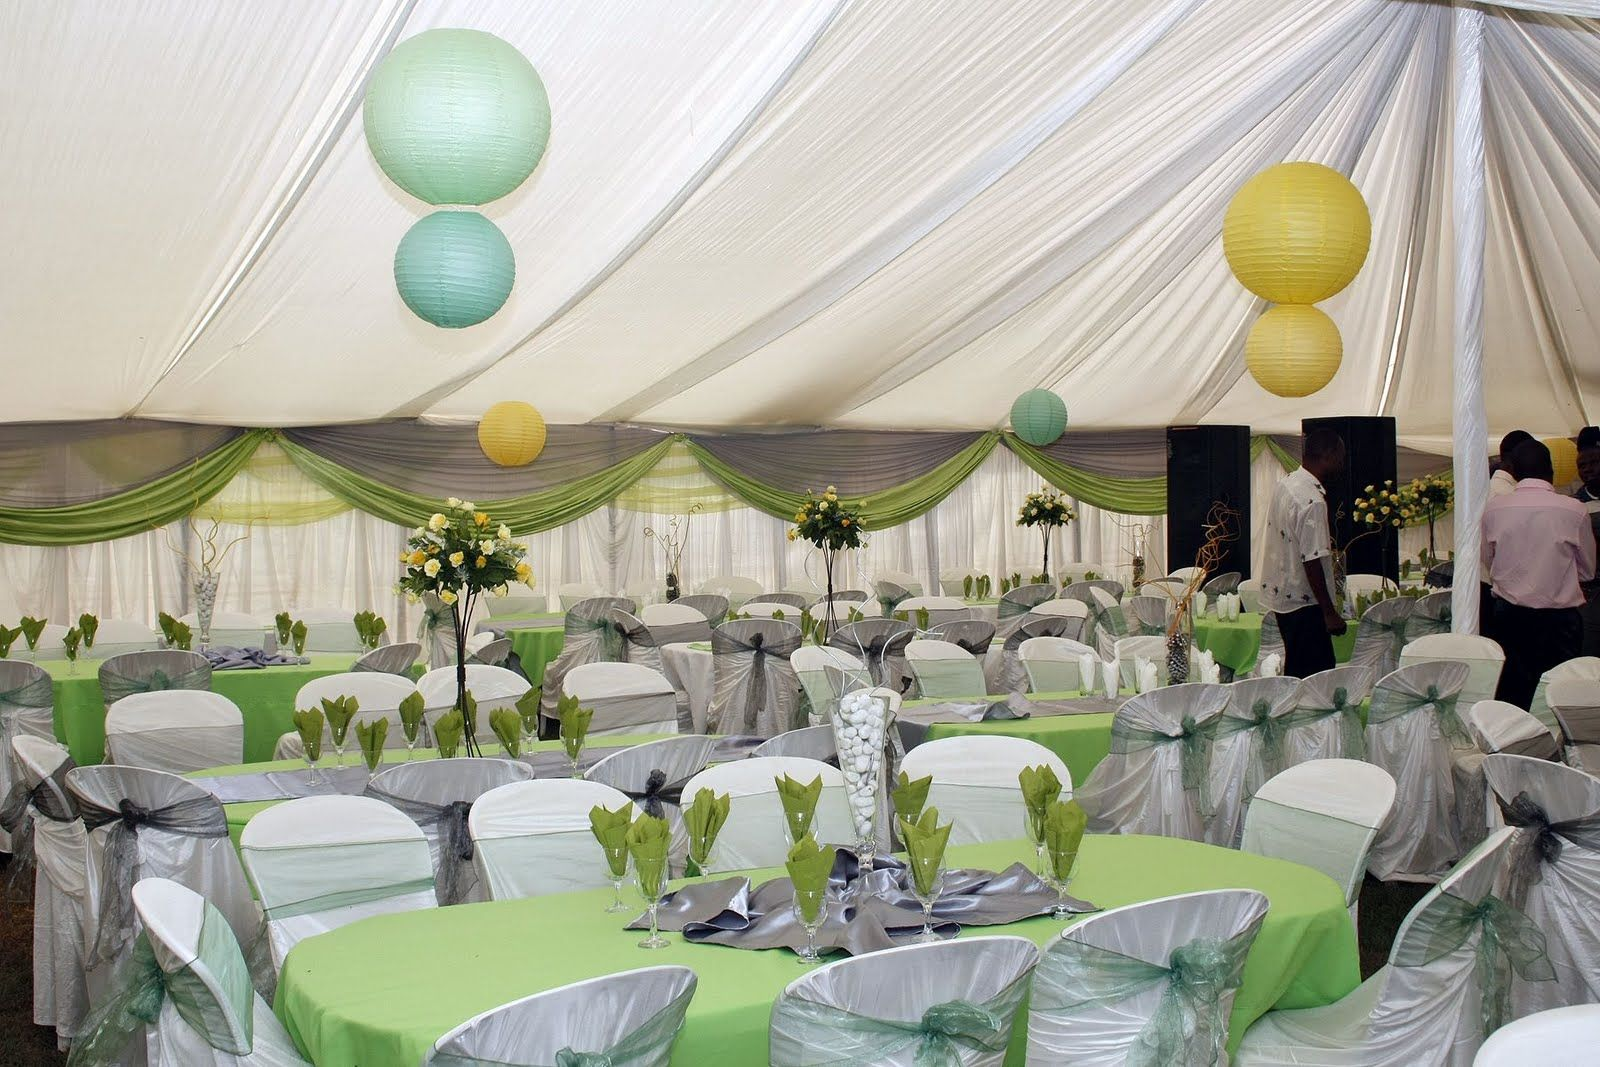 Garden wedding reception decoration ideas how to make for Simple party decorations at home